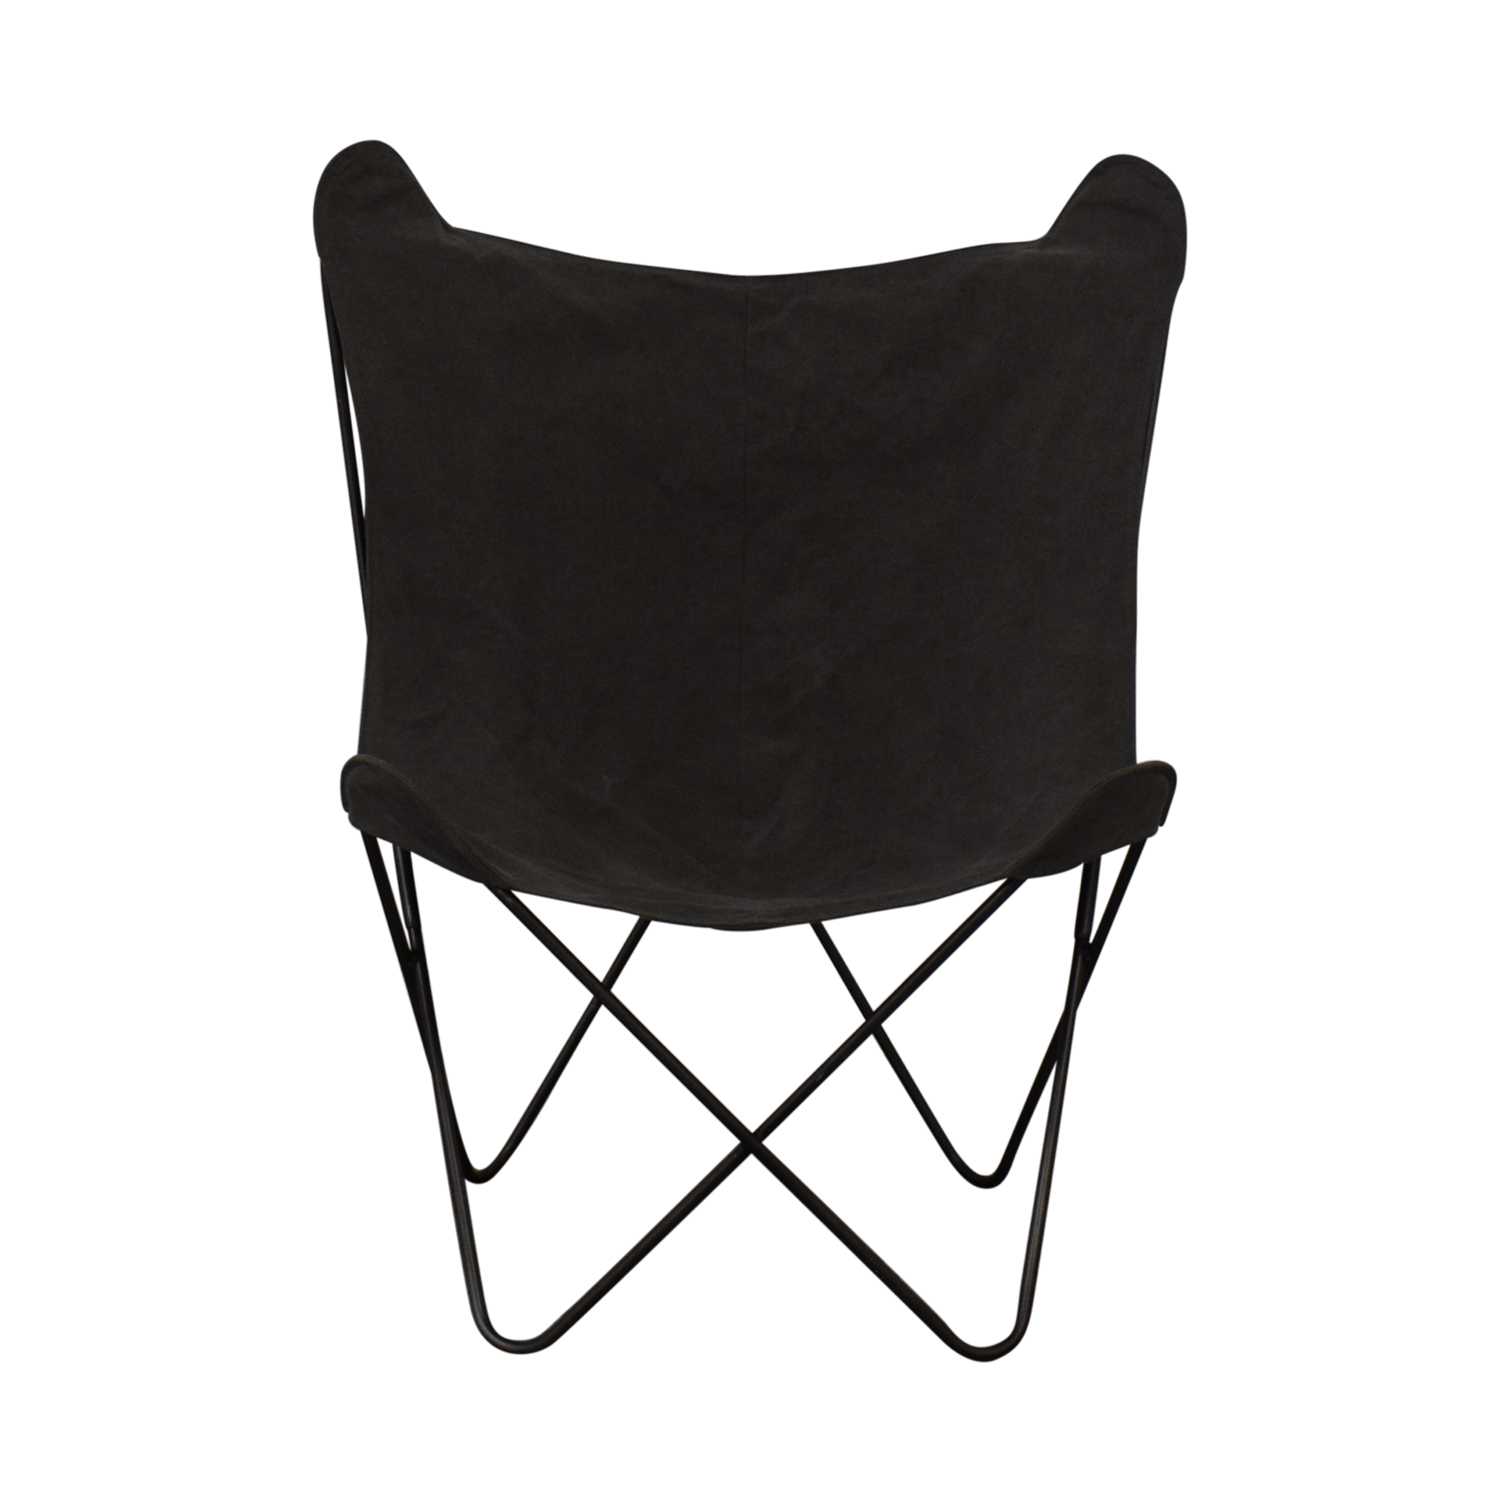 Restoration Hardware Restoration Hardware Butterfly Chair coupon